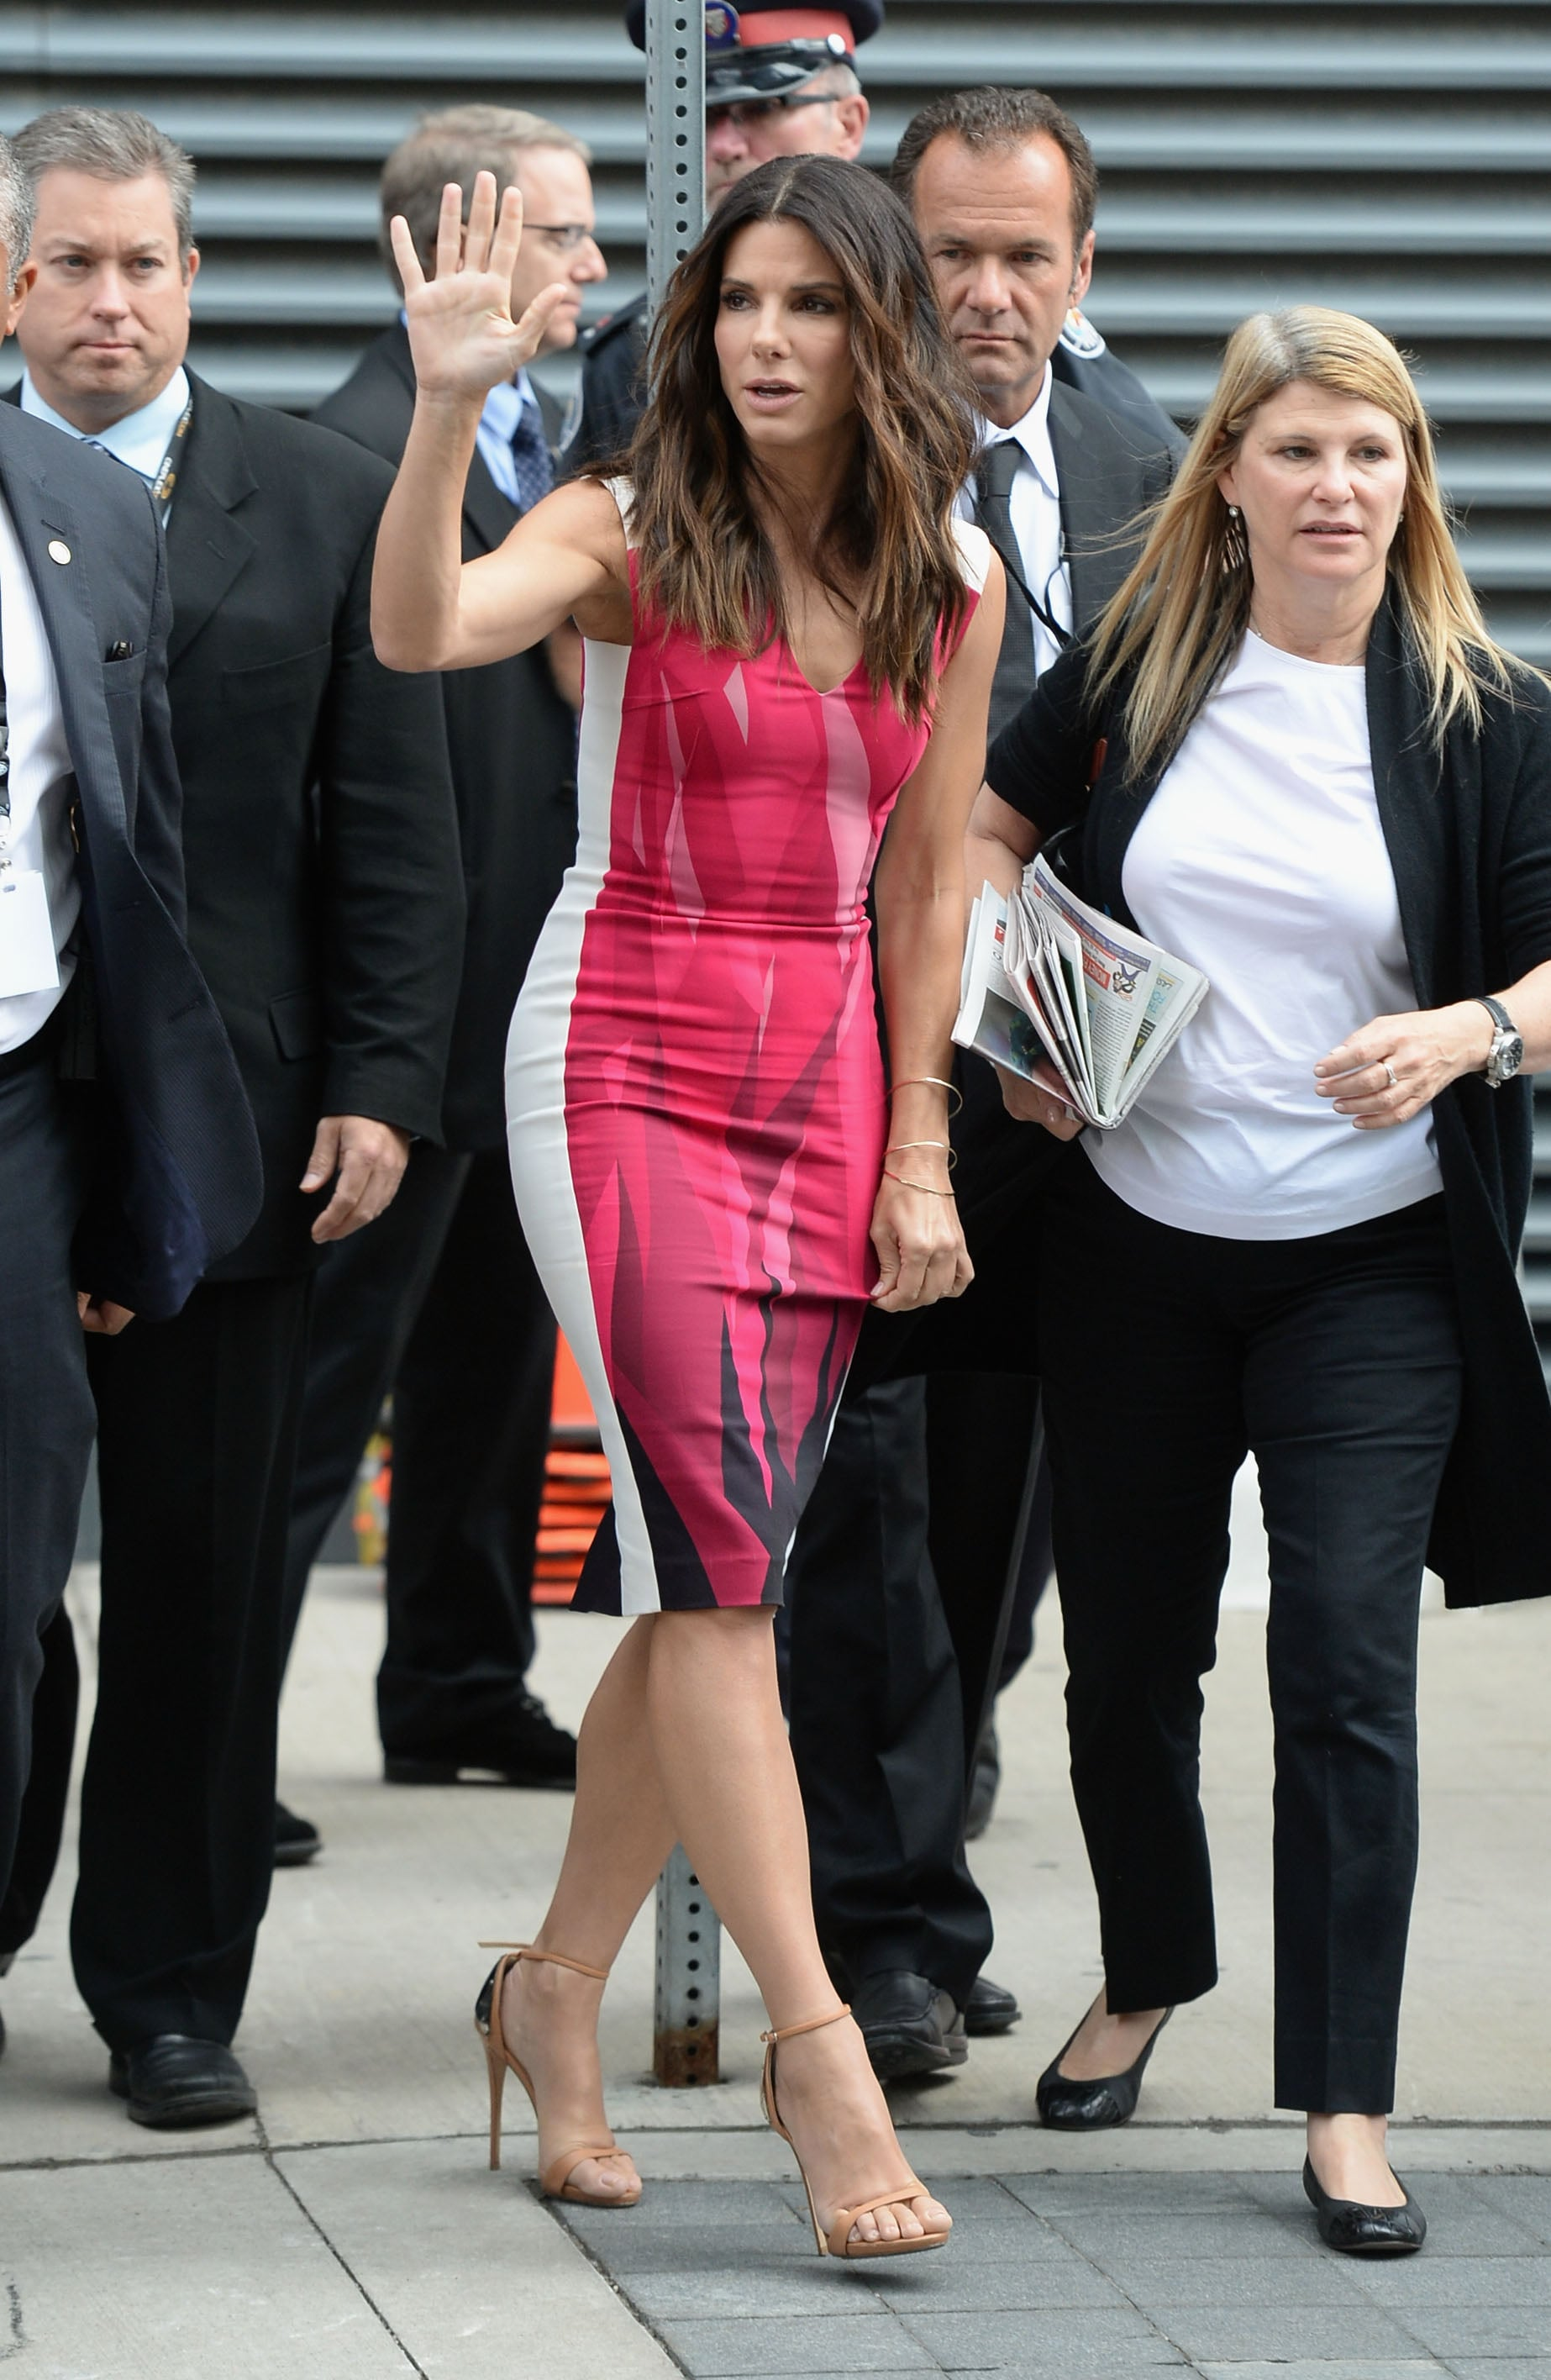 Sandra Bullock in Roland Mouret at the Toronto Film Festival